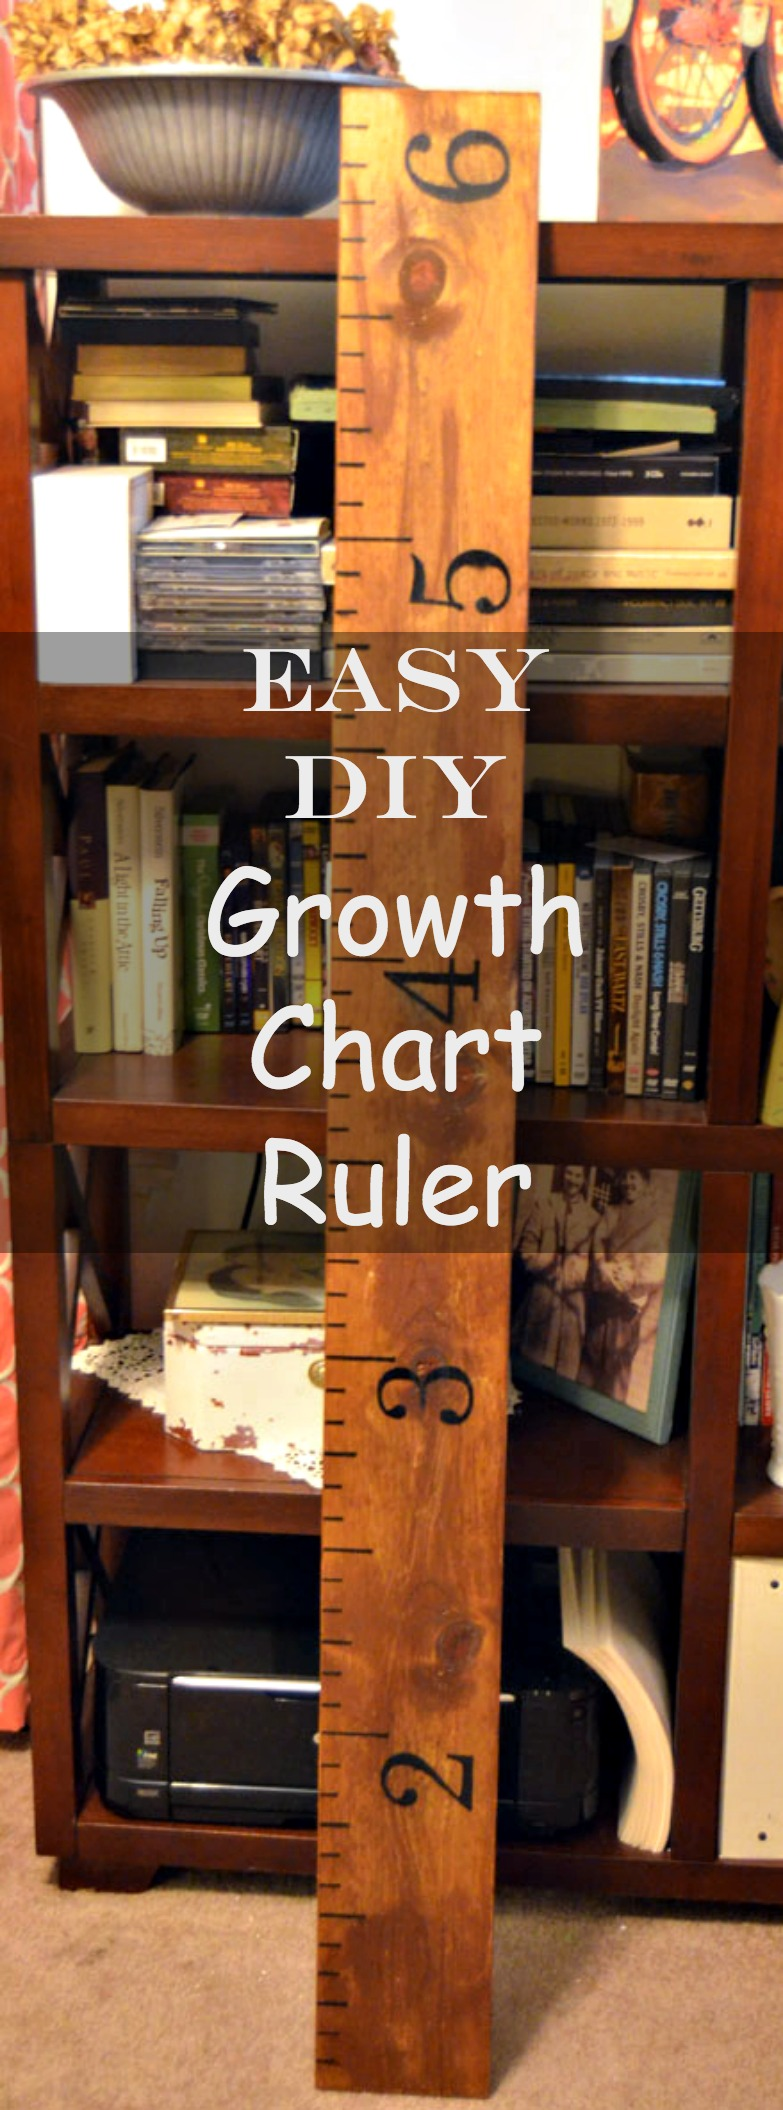 how-to-make-growth-chart-ruler